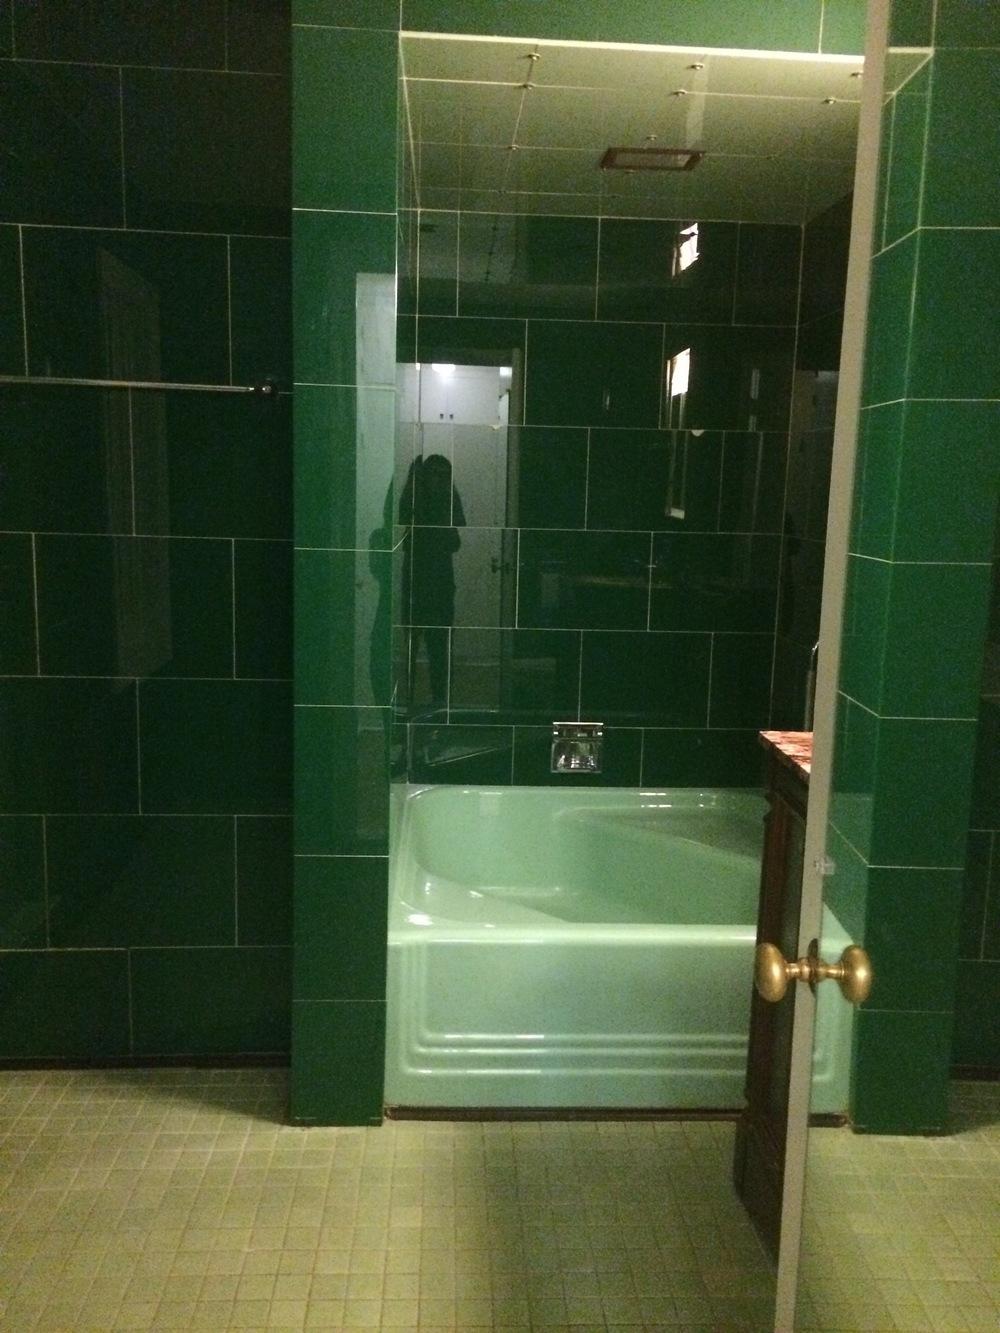 The unusually square tub and worn floor tile. Not minty fresh.